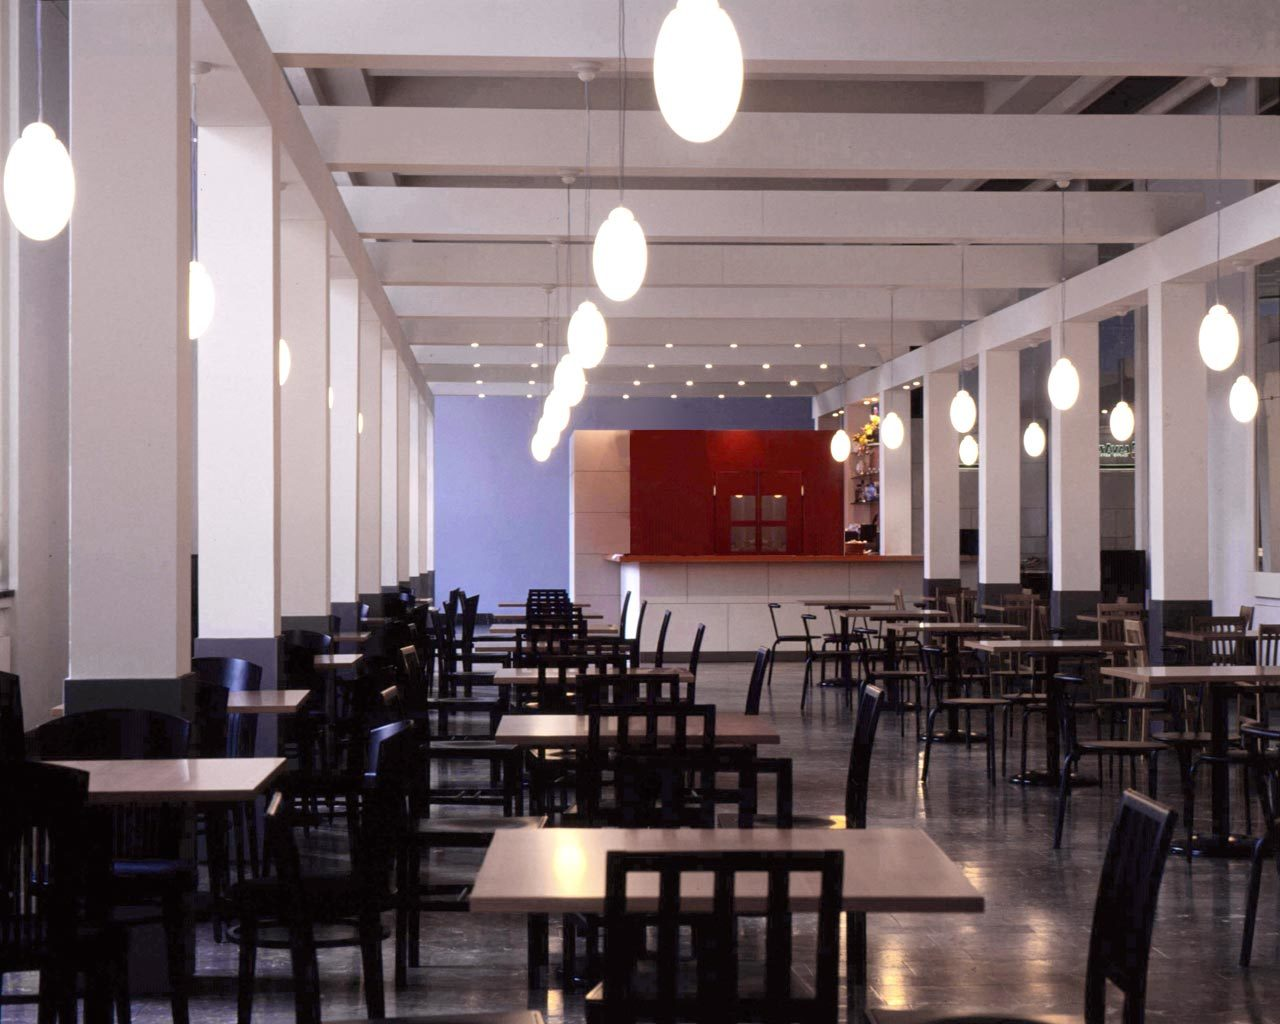 Cafeteria I, Altes Museum, Berlin, Germany, 1993